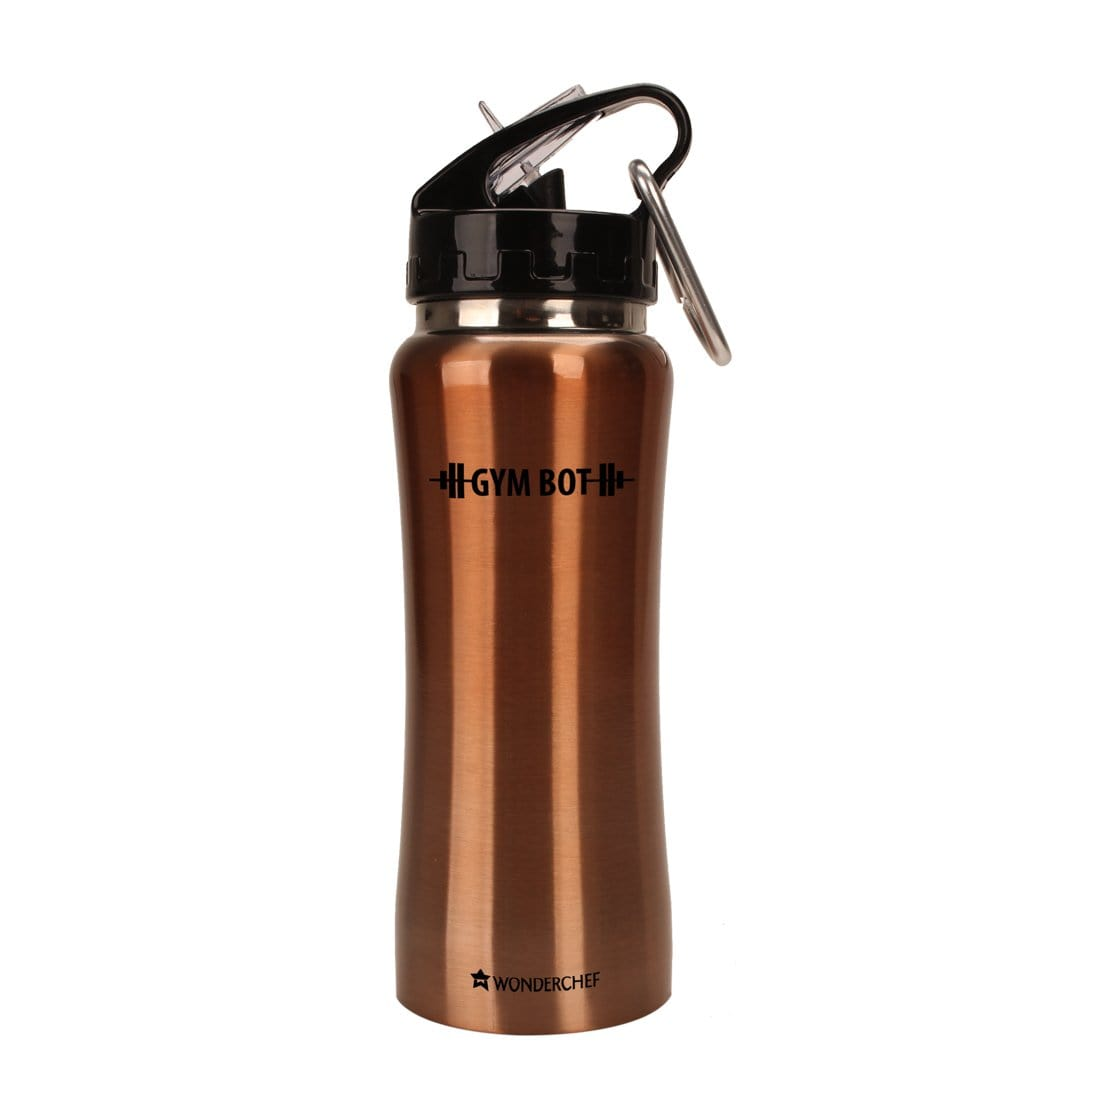 Wonderchef Gym Bot Single Wall Bottle